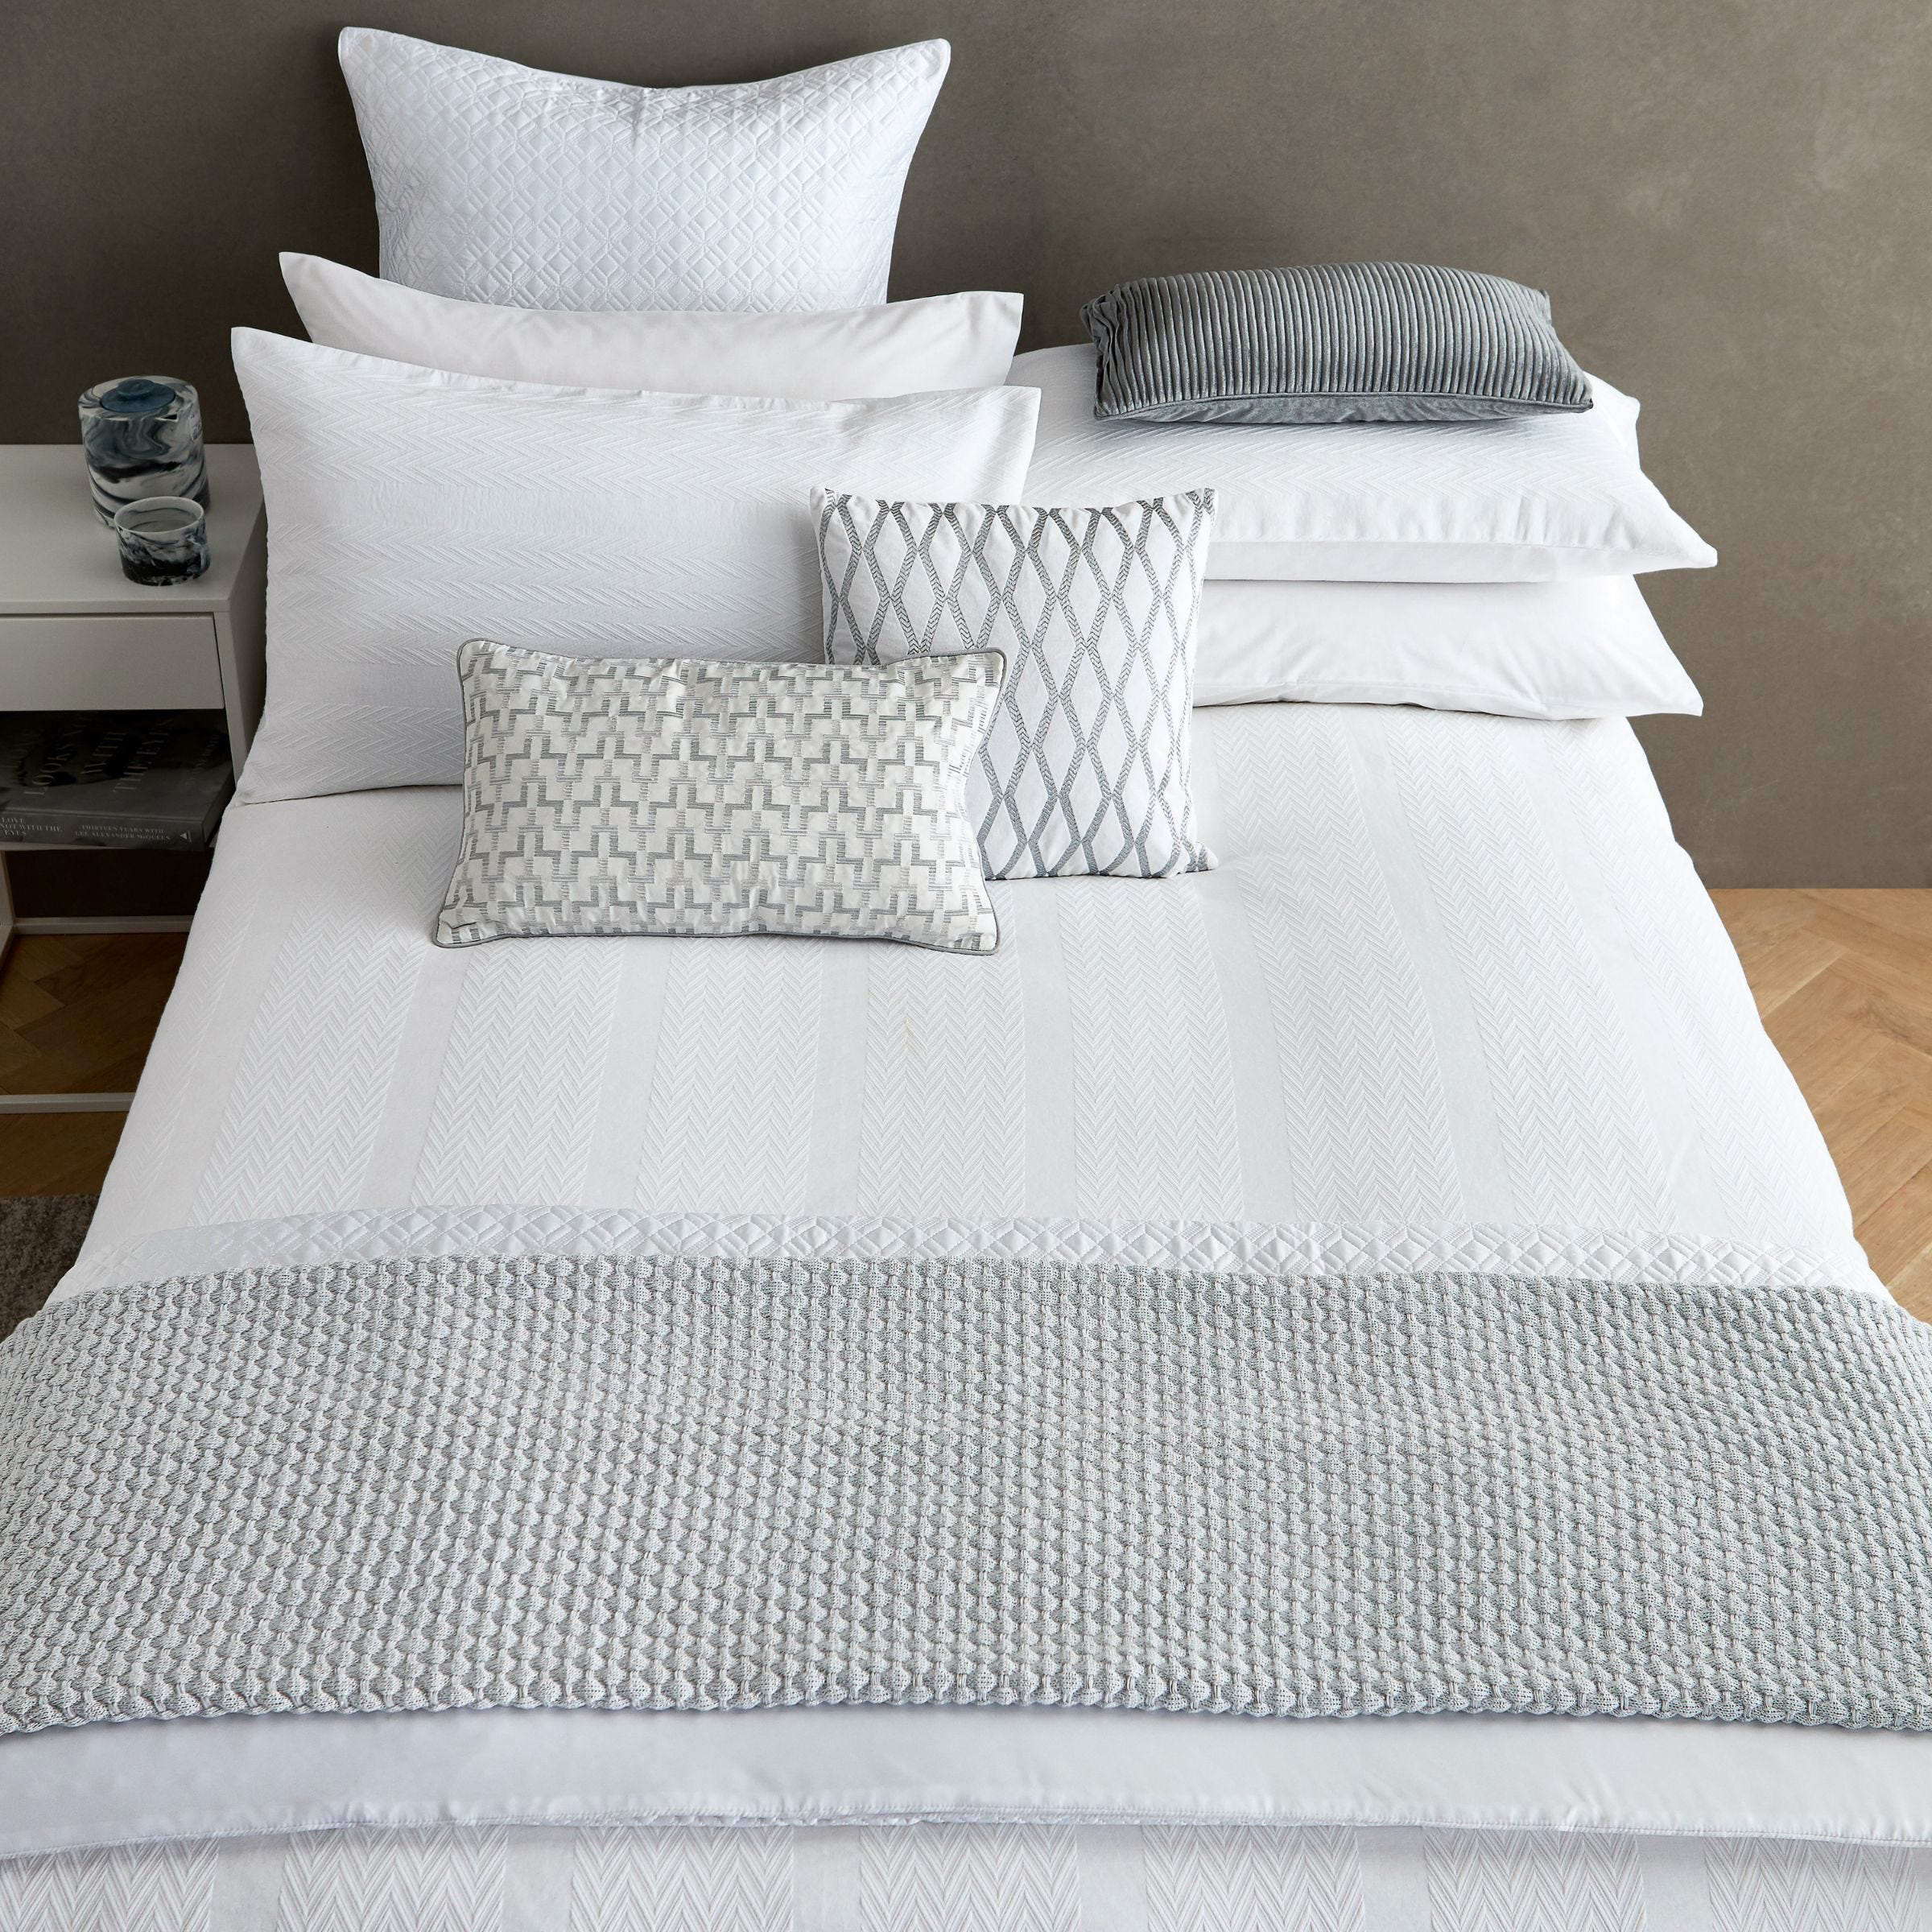 Blanca White Textured Bedding Bedeck Home